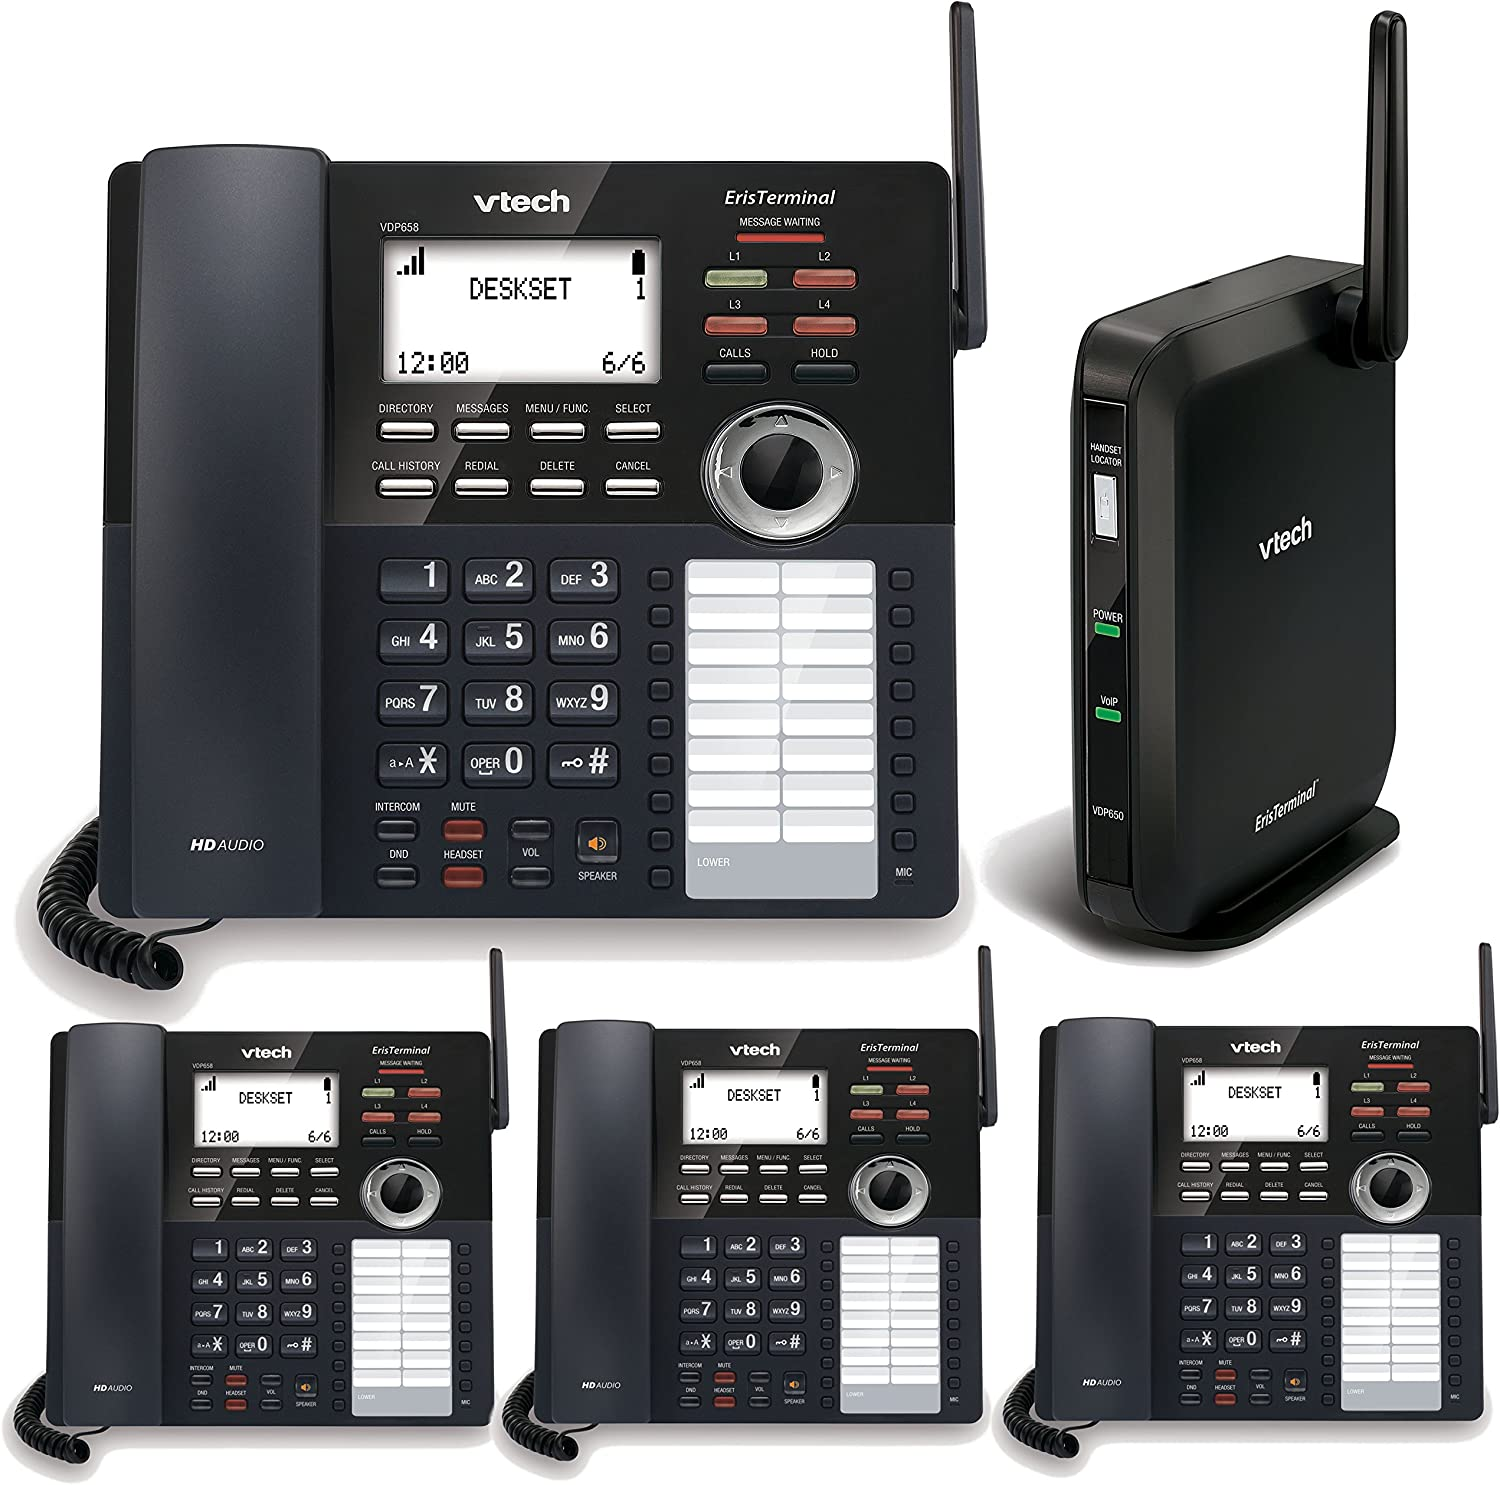 Amazon Com Telco Depot Bundle Of Vtech 4 Line Small Business Phone System With 4 Desksets Includes 2 Lines Unlimited Calling Us And Canada For 1 Year Electronics